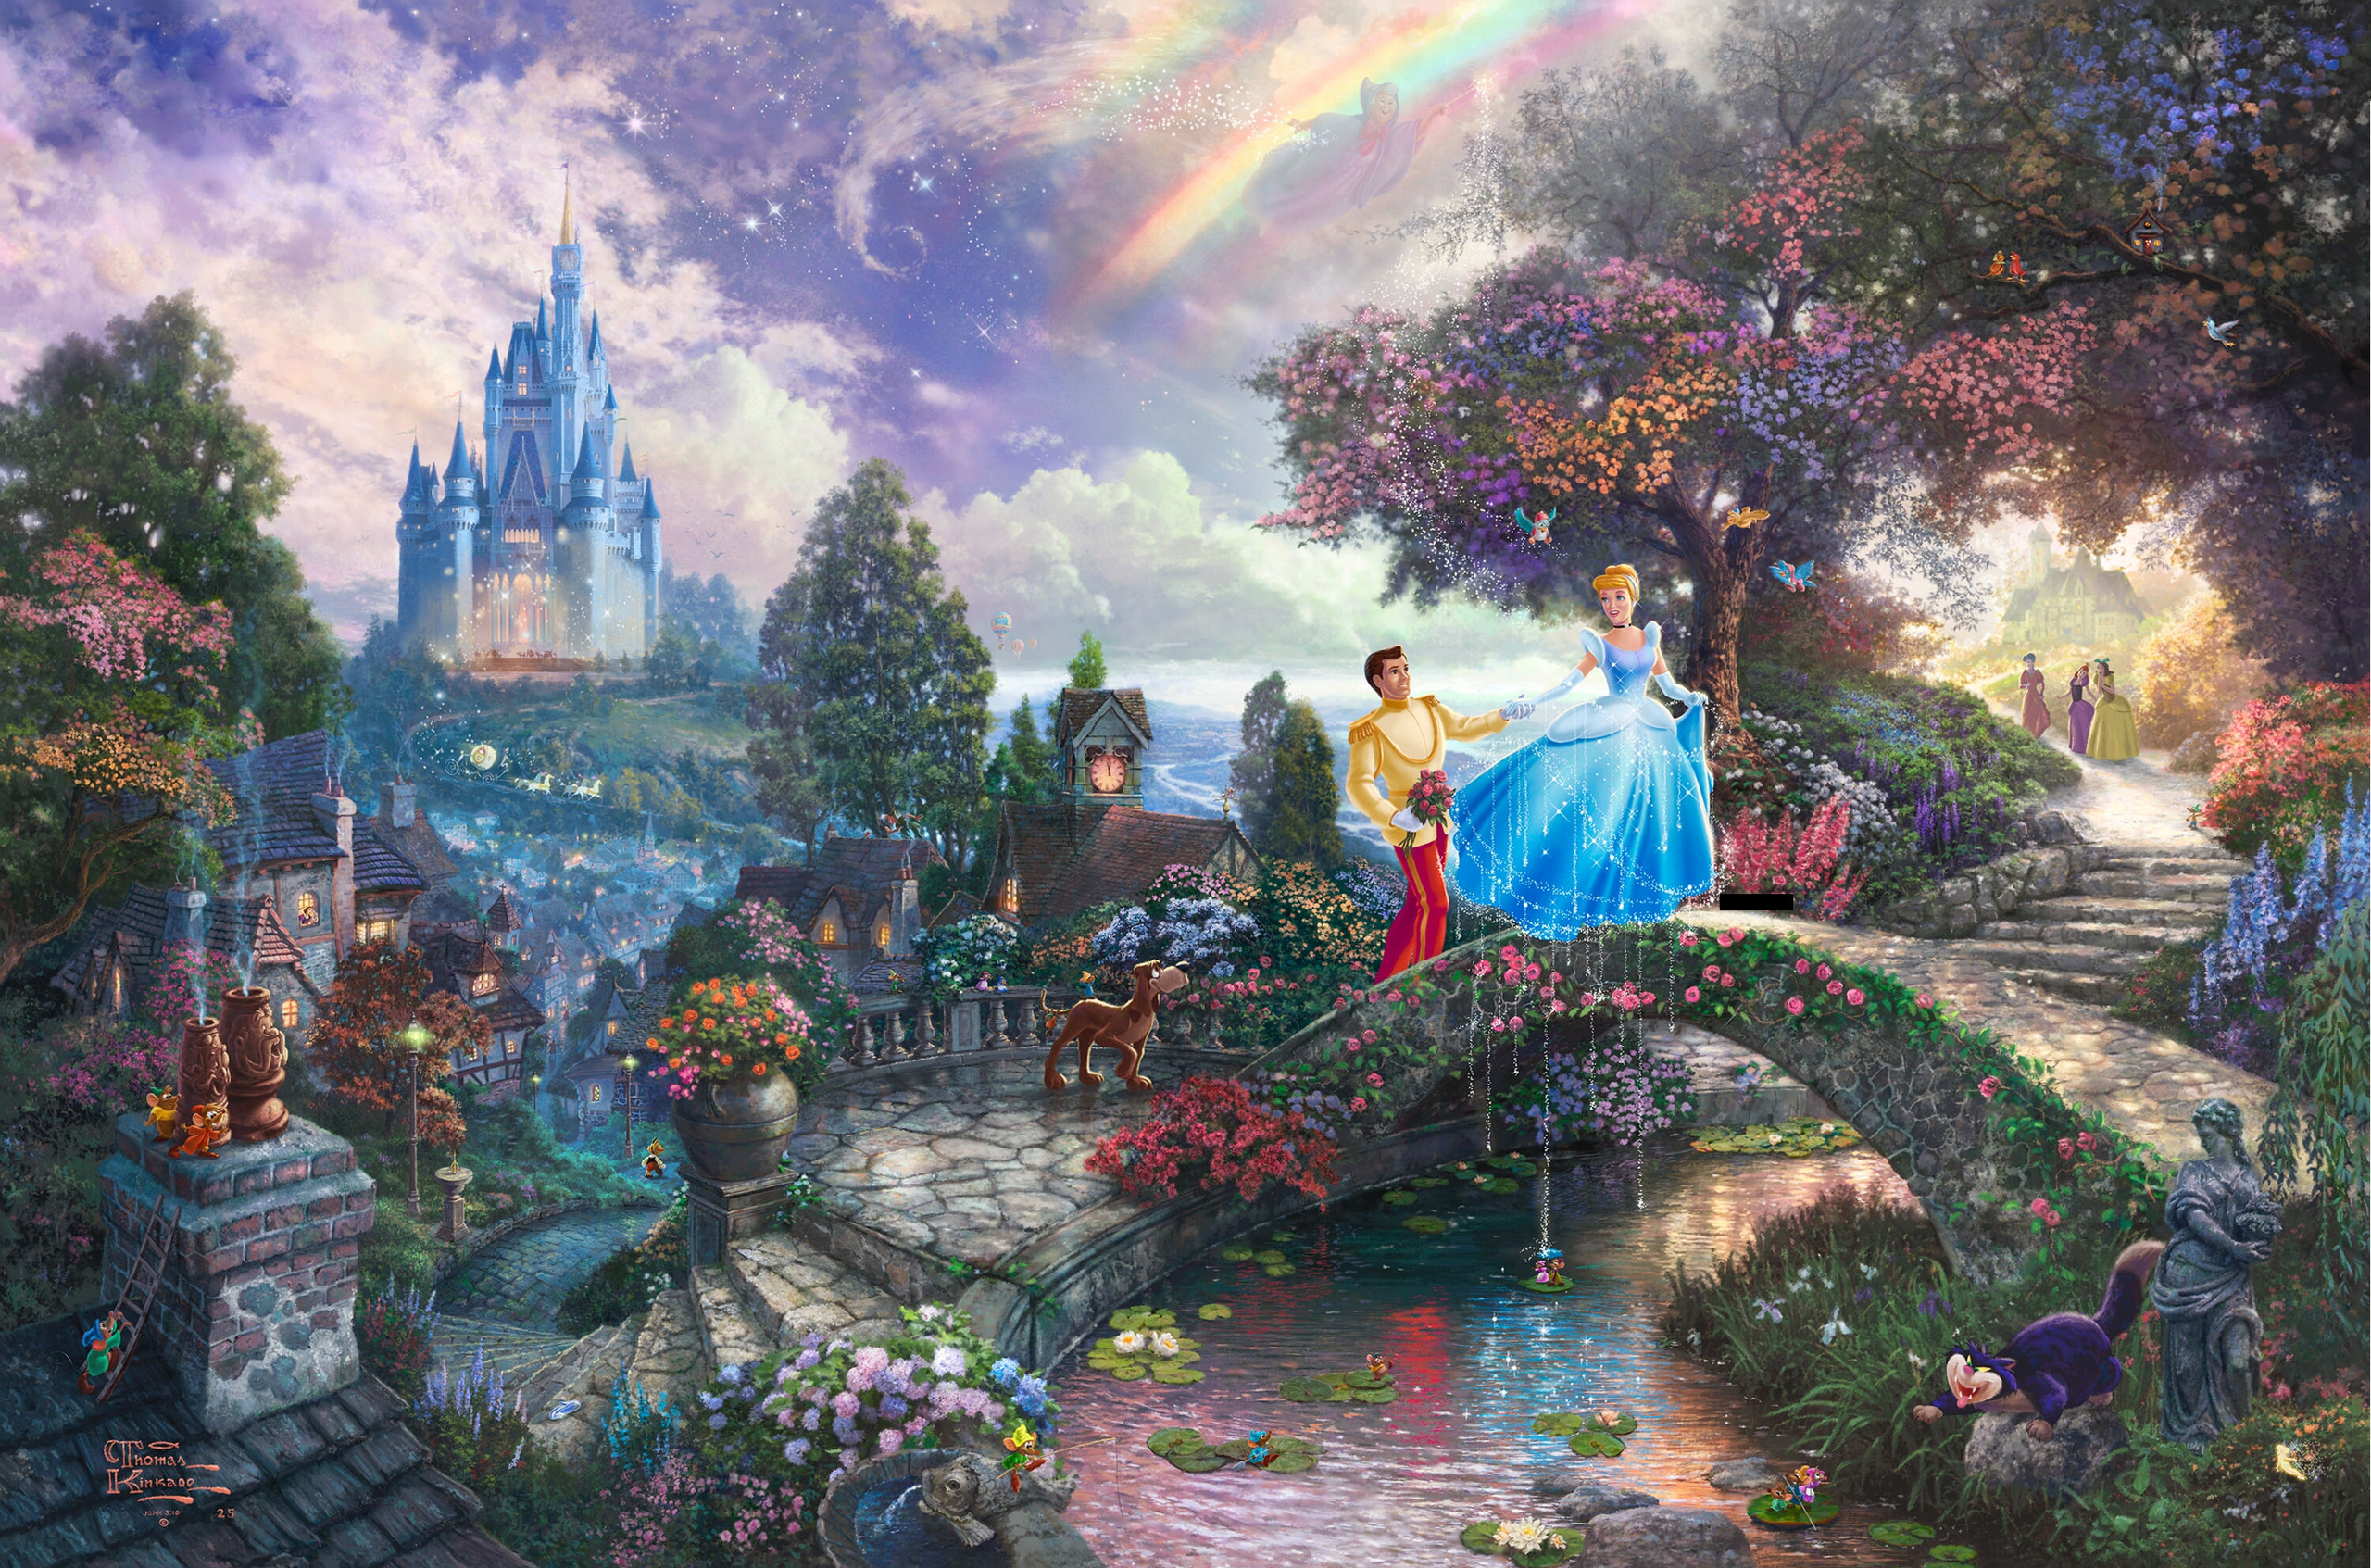 Disney Princess images Thomas Kinkade Disney Dreams wallpaper photos 2560x1693